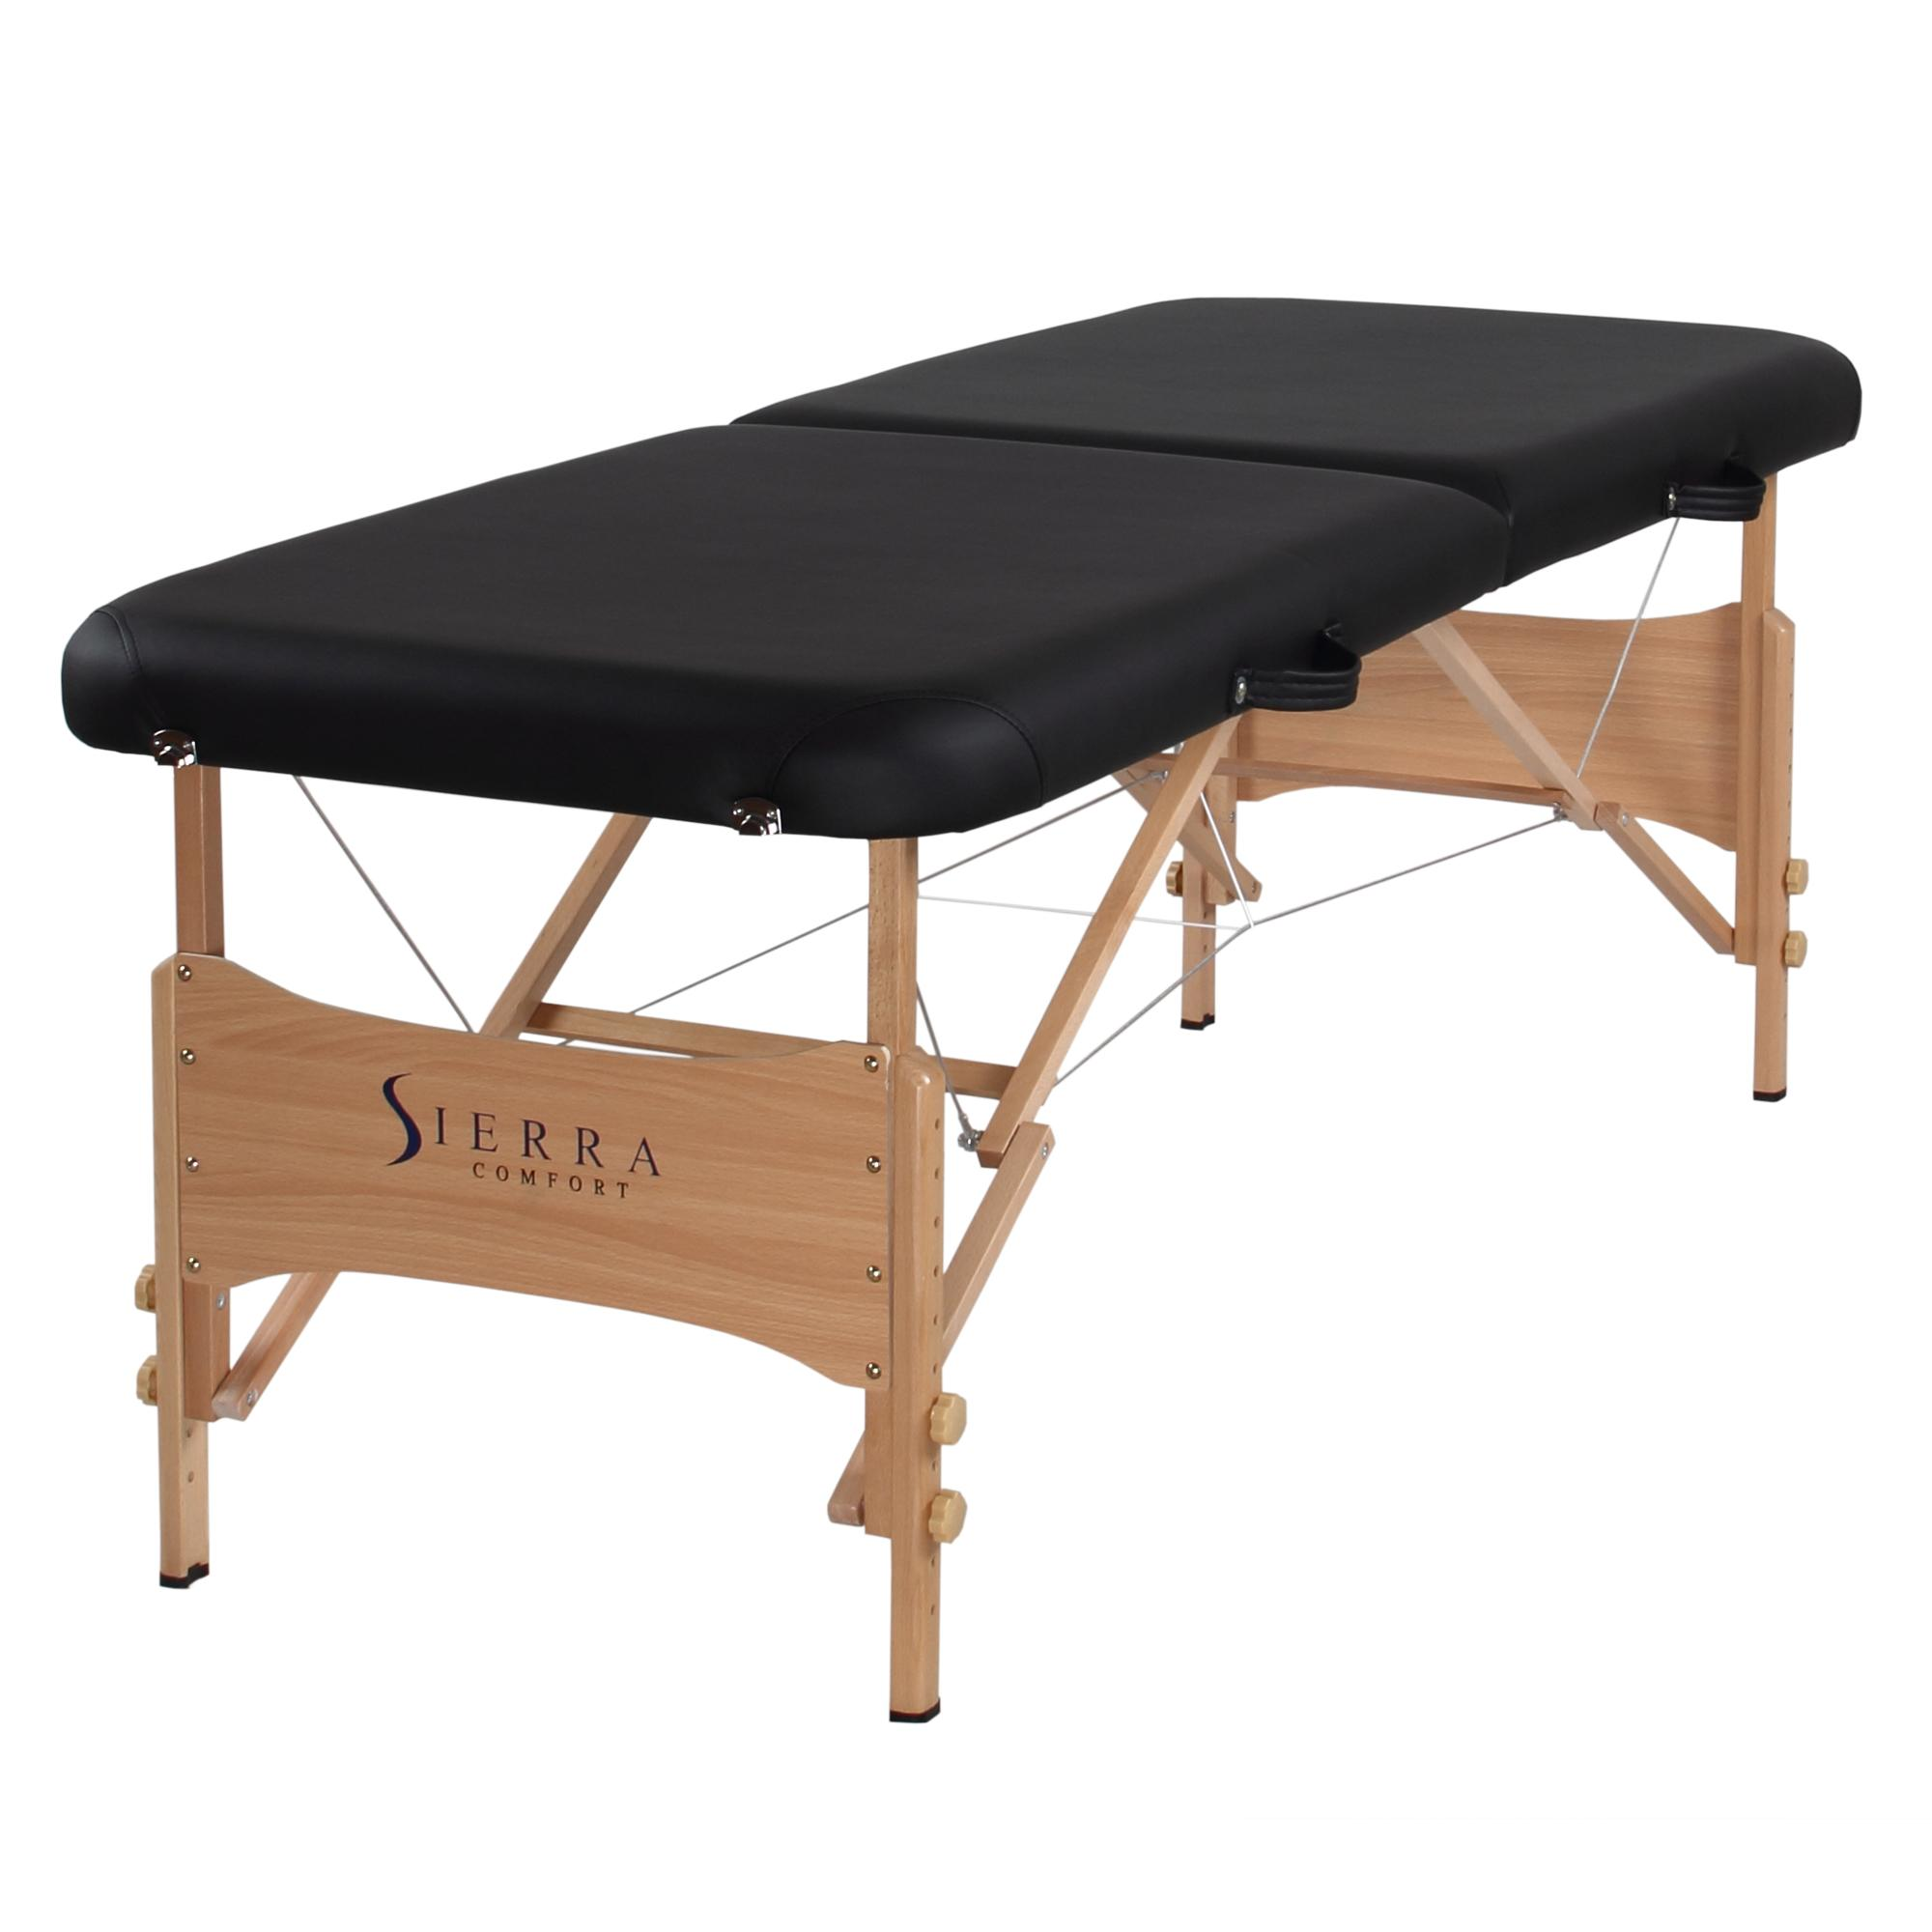 factory w bolster wholesale massage sheet facial direct cover spa product cradle table bed black shop mt portable rakuten